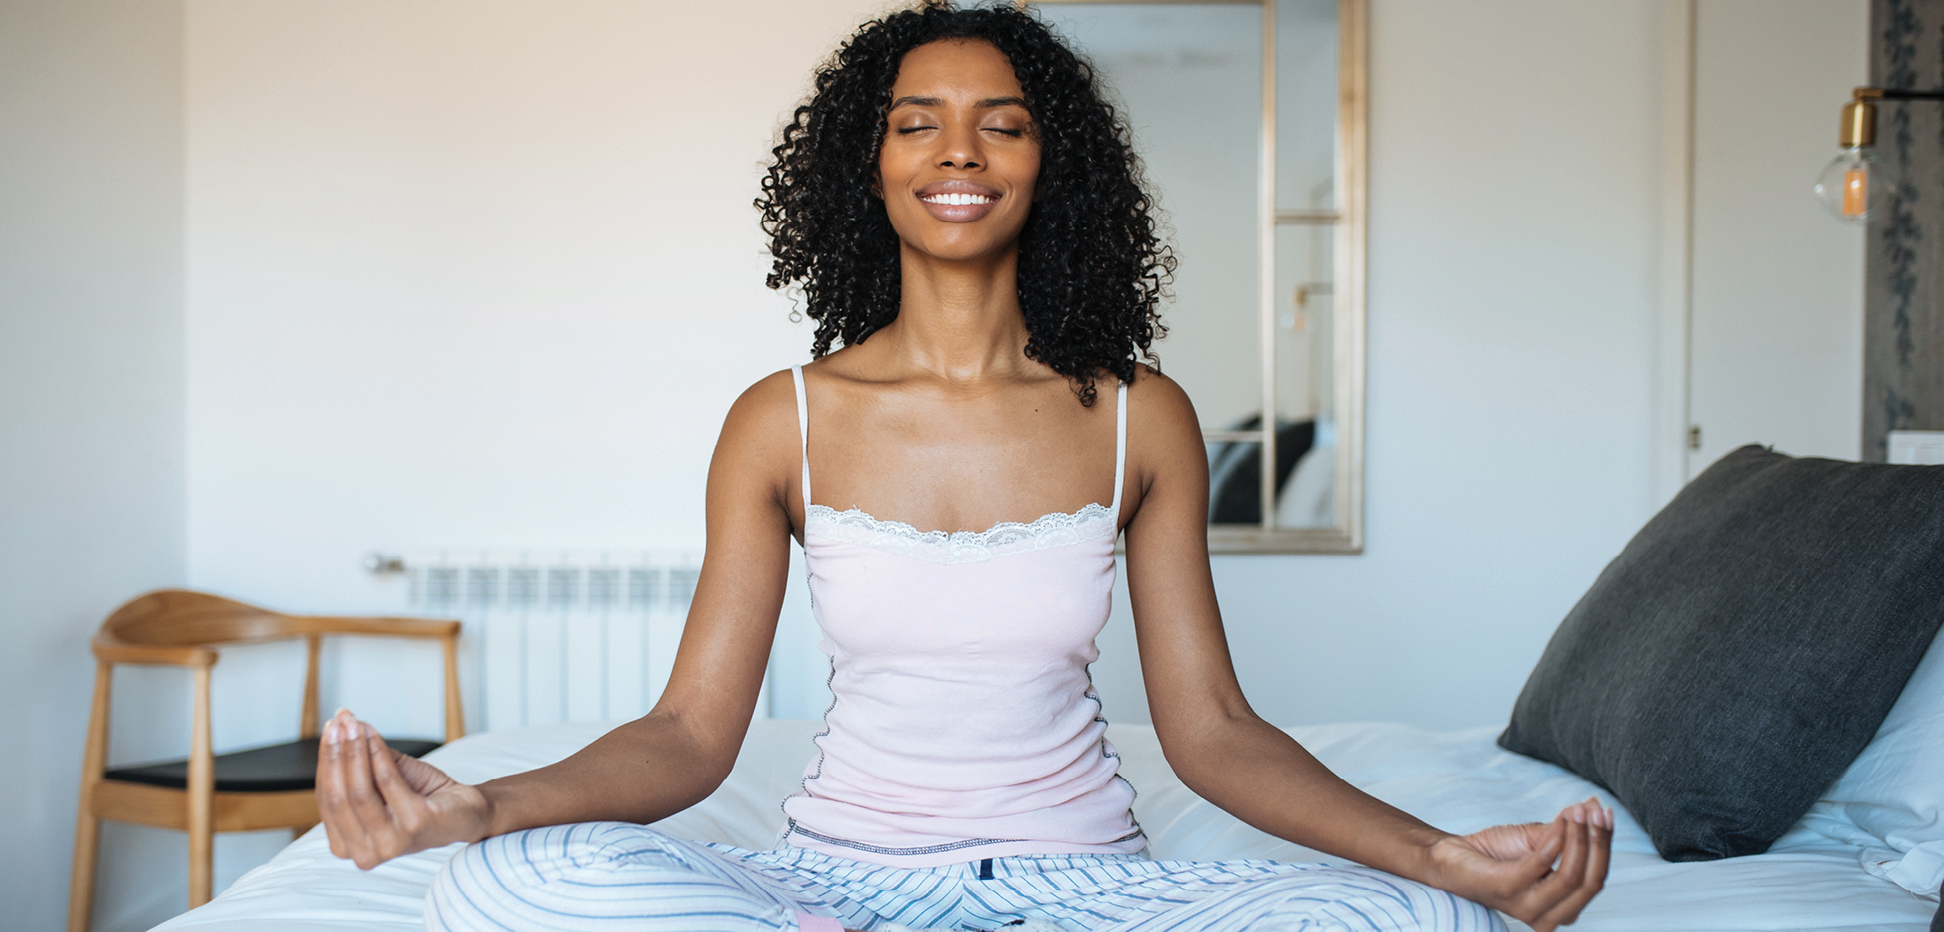 Young woman doing mindful meditation sitting on bed